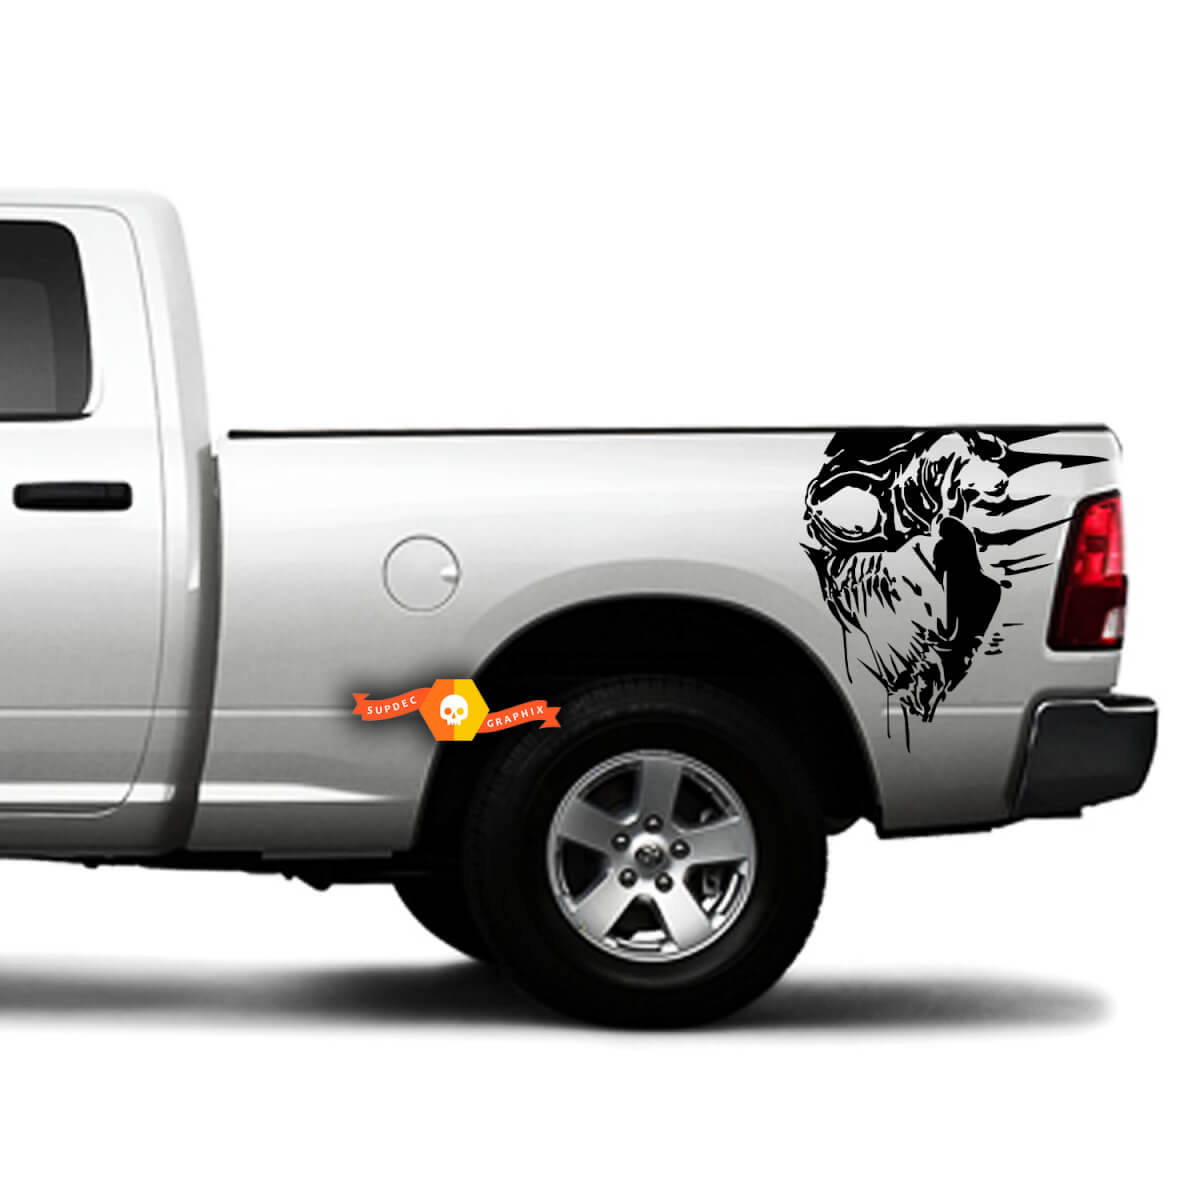 Dodge Ram Chevy Ford Grunge Skull Side Truck Vinyl Graphic Decal bed Tailgate